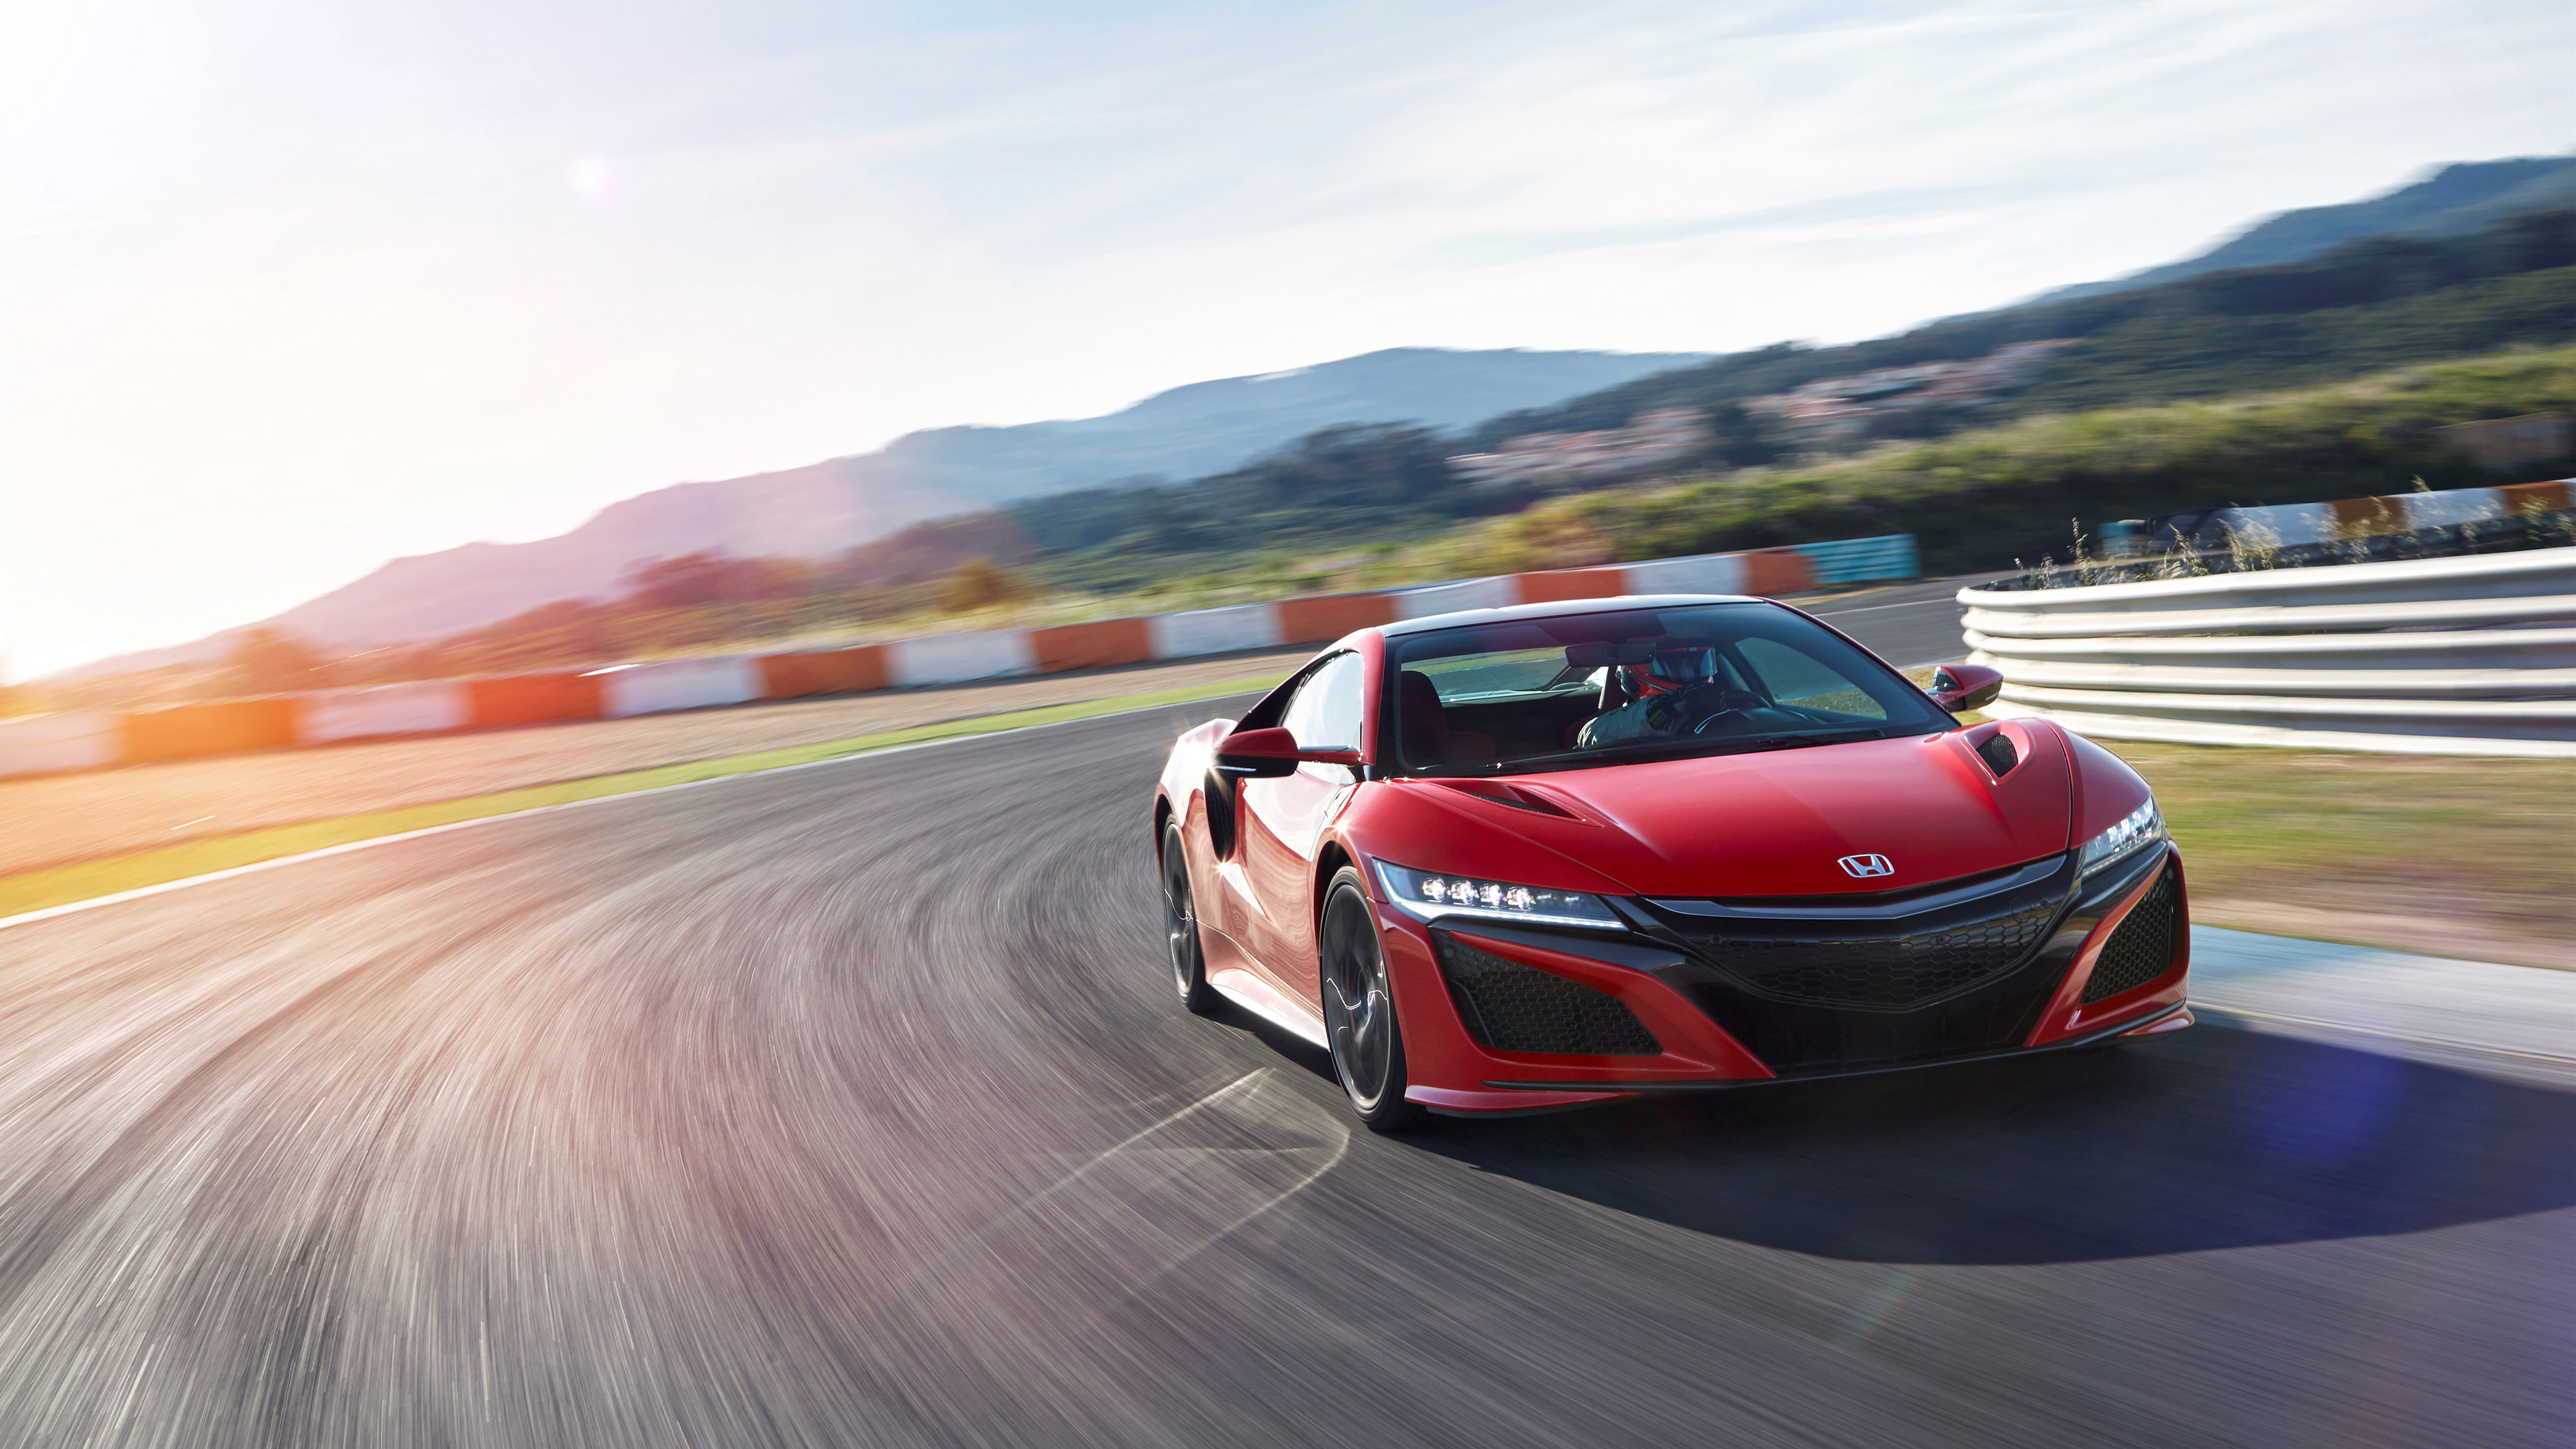 honda nsx 4k 1539104657 - Honda NSX 4k - honda wallpapers, honda nsx wallpapers, cars wallpapers, 2017 cars wallpapers